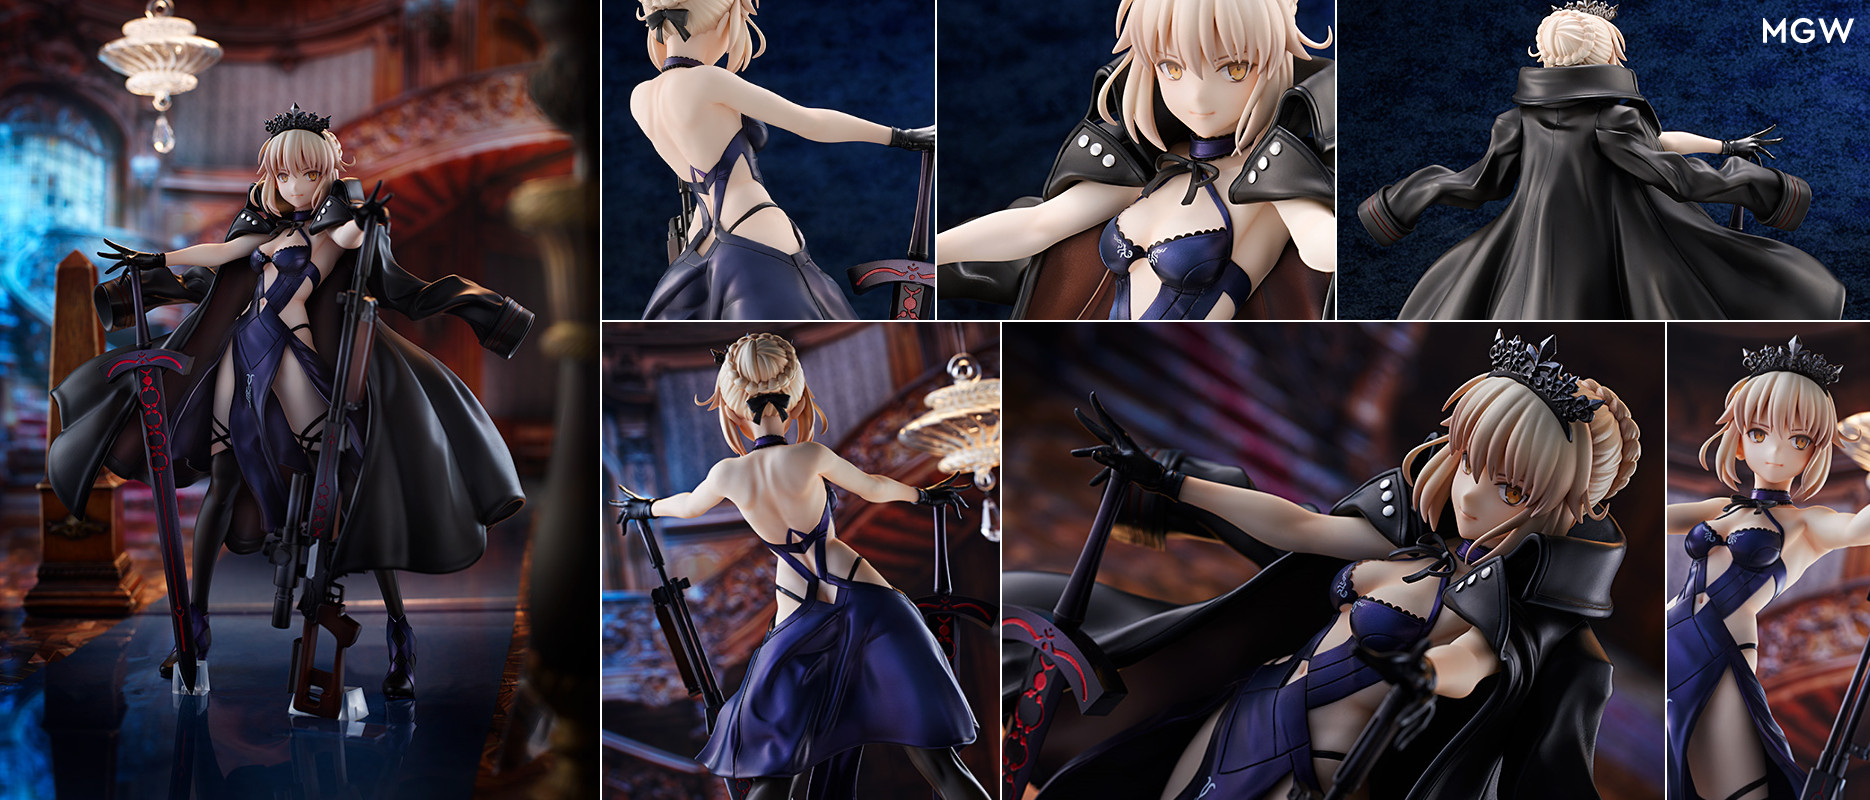 Rider/Altria Pendragon [Alter] by AMAKUNI from Fate/Grand Order MyGrailWatch Anime Figure Pre-order Guide